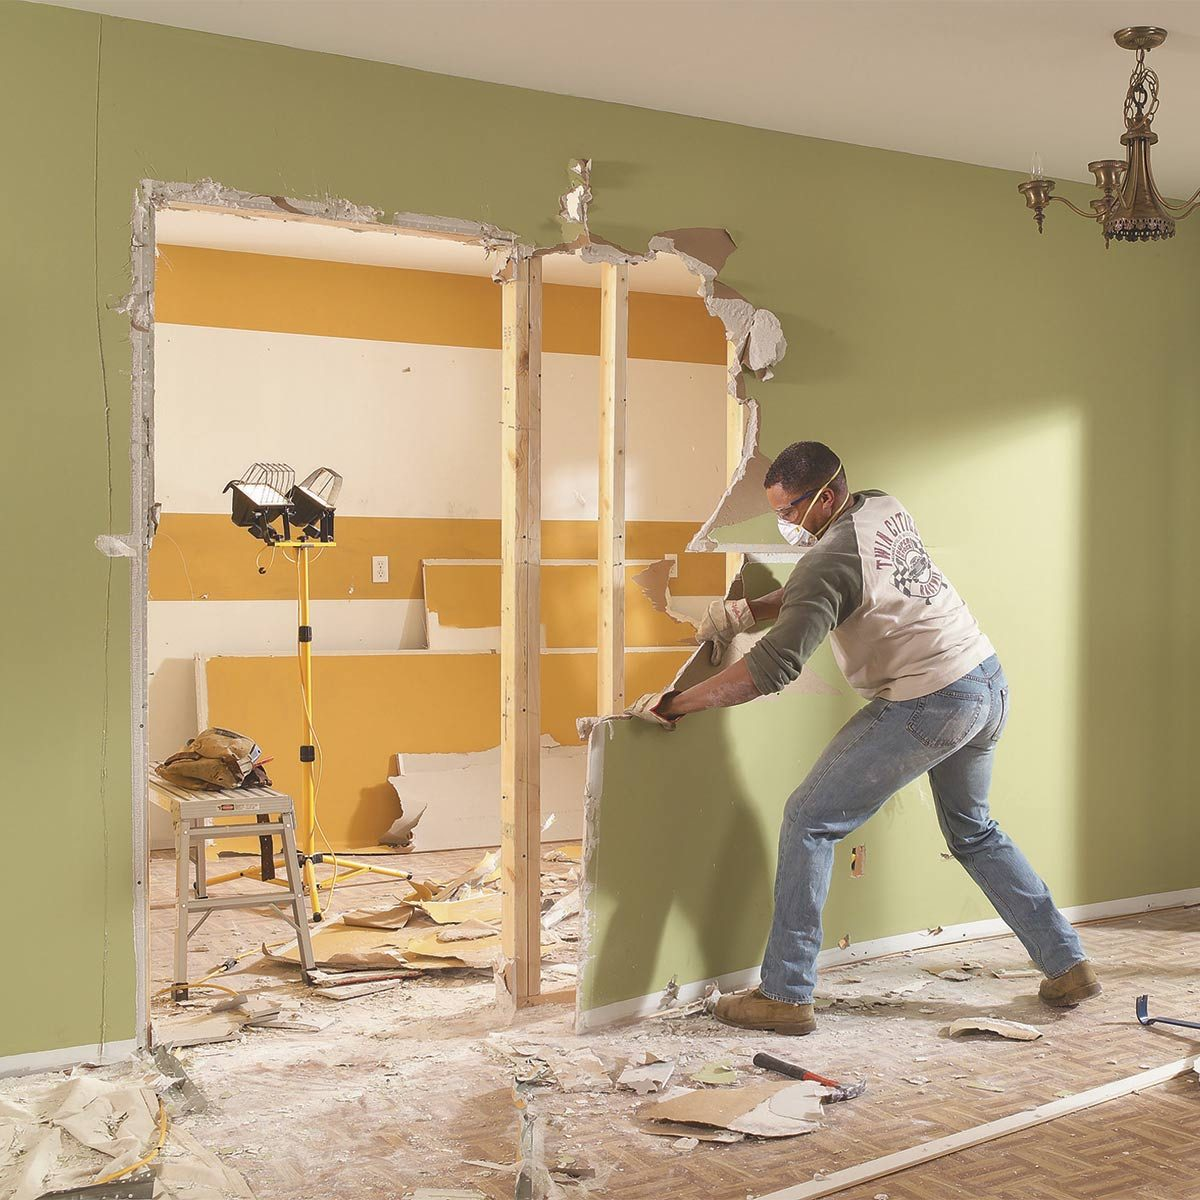 Wallpaper Falling Off Ceiling 51 Diy Demolition Tips You Need To Know The Family Handyman